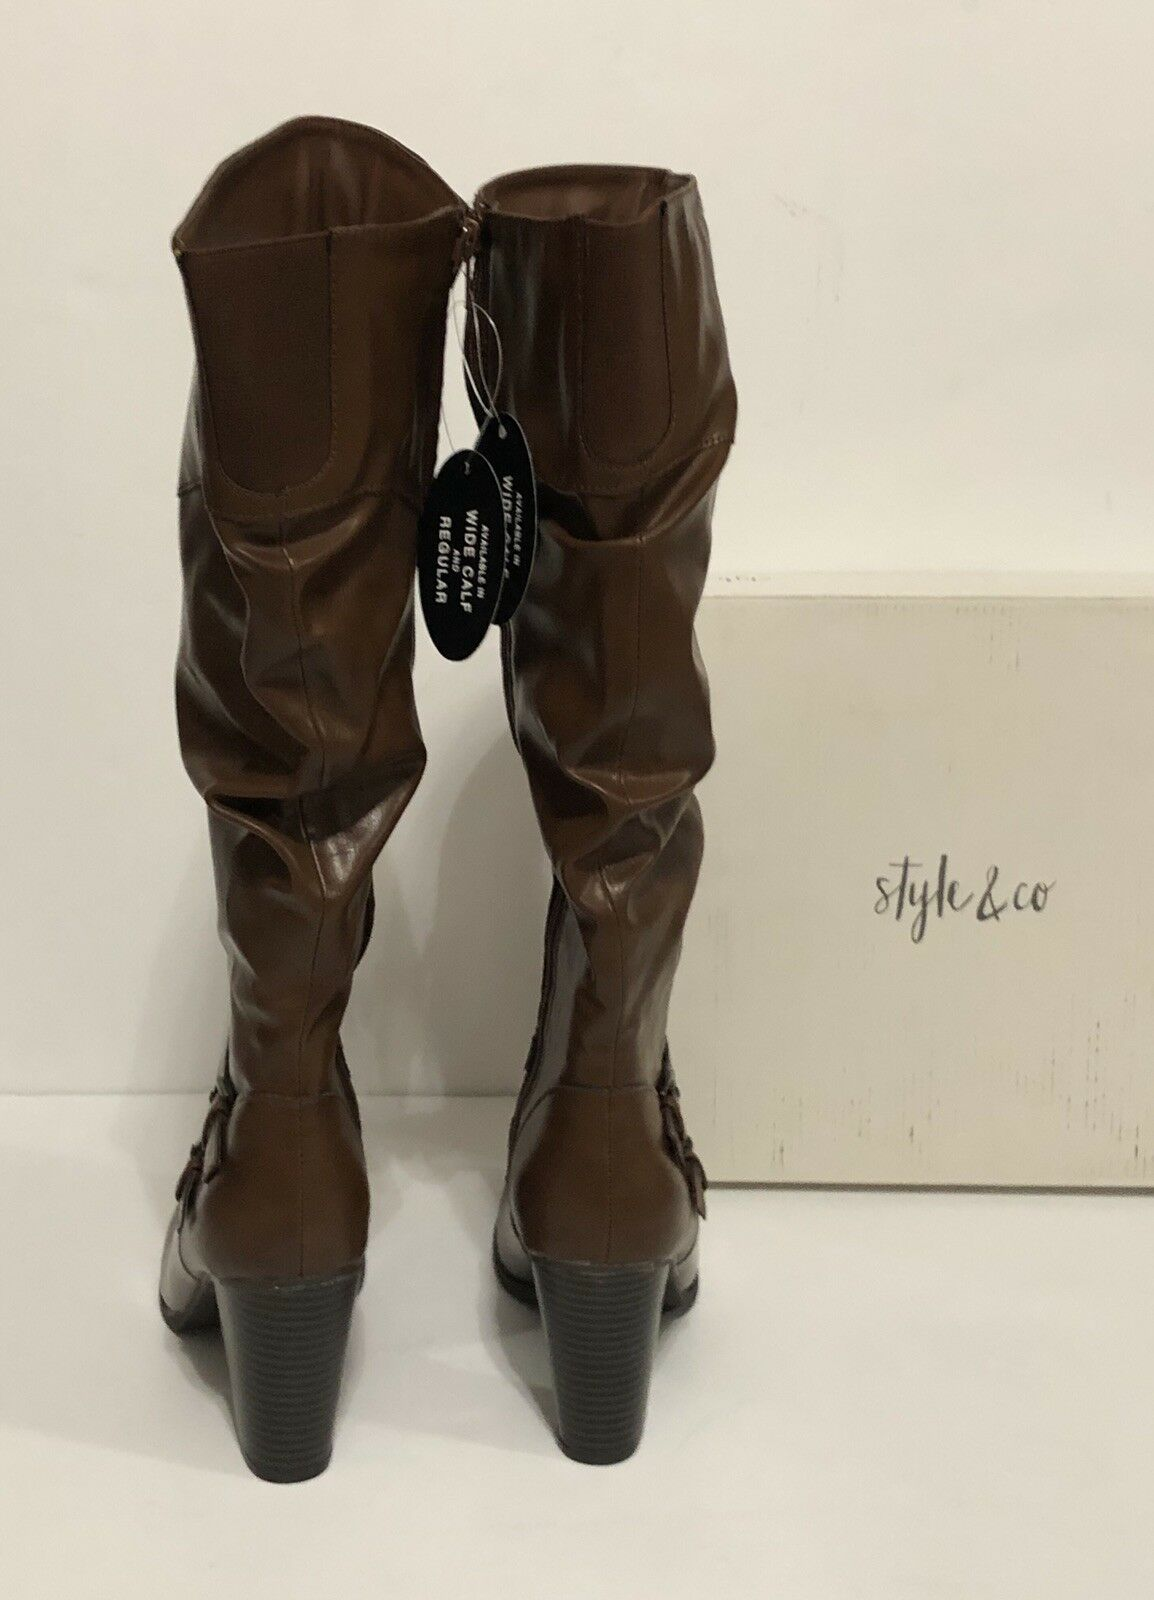 Style & Retail Co Sophiiep Ruched Stiefel Cognac 8.5M Retail & 79.50 3846c2